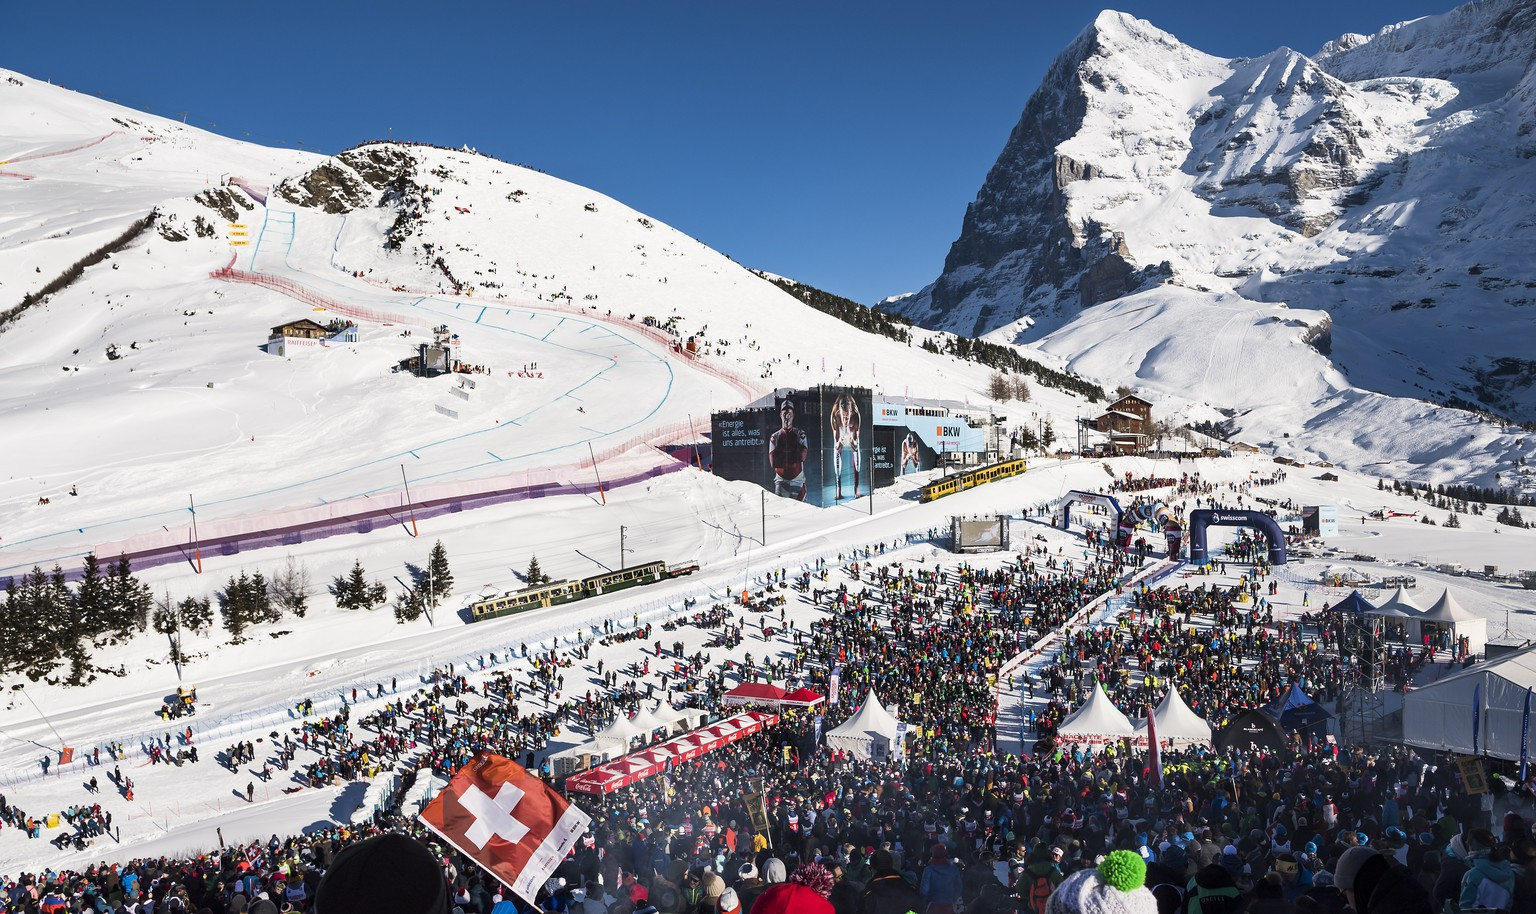 epa07300157 Spectators during the men's downhill race at the FIS Alpine Skiing World Cup in Wengen, Switzerland, 19 January 2019. On the right the Eiger mountain is seen.  EPA/JEAN-CHRISTOPHE BOTT